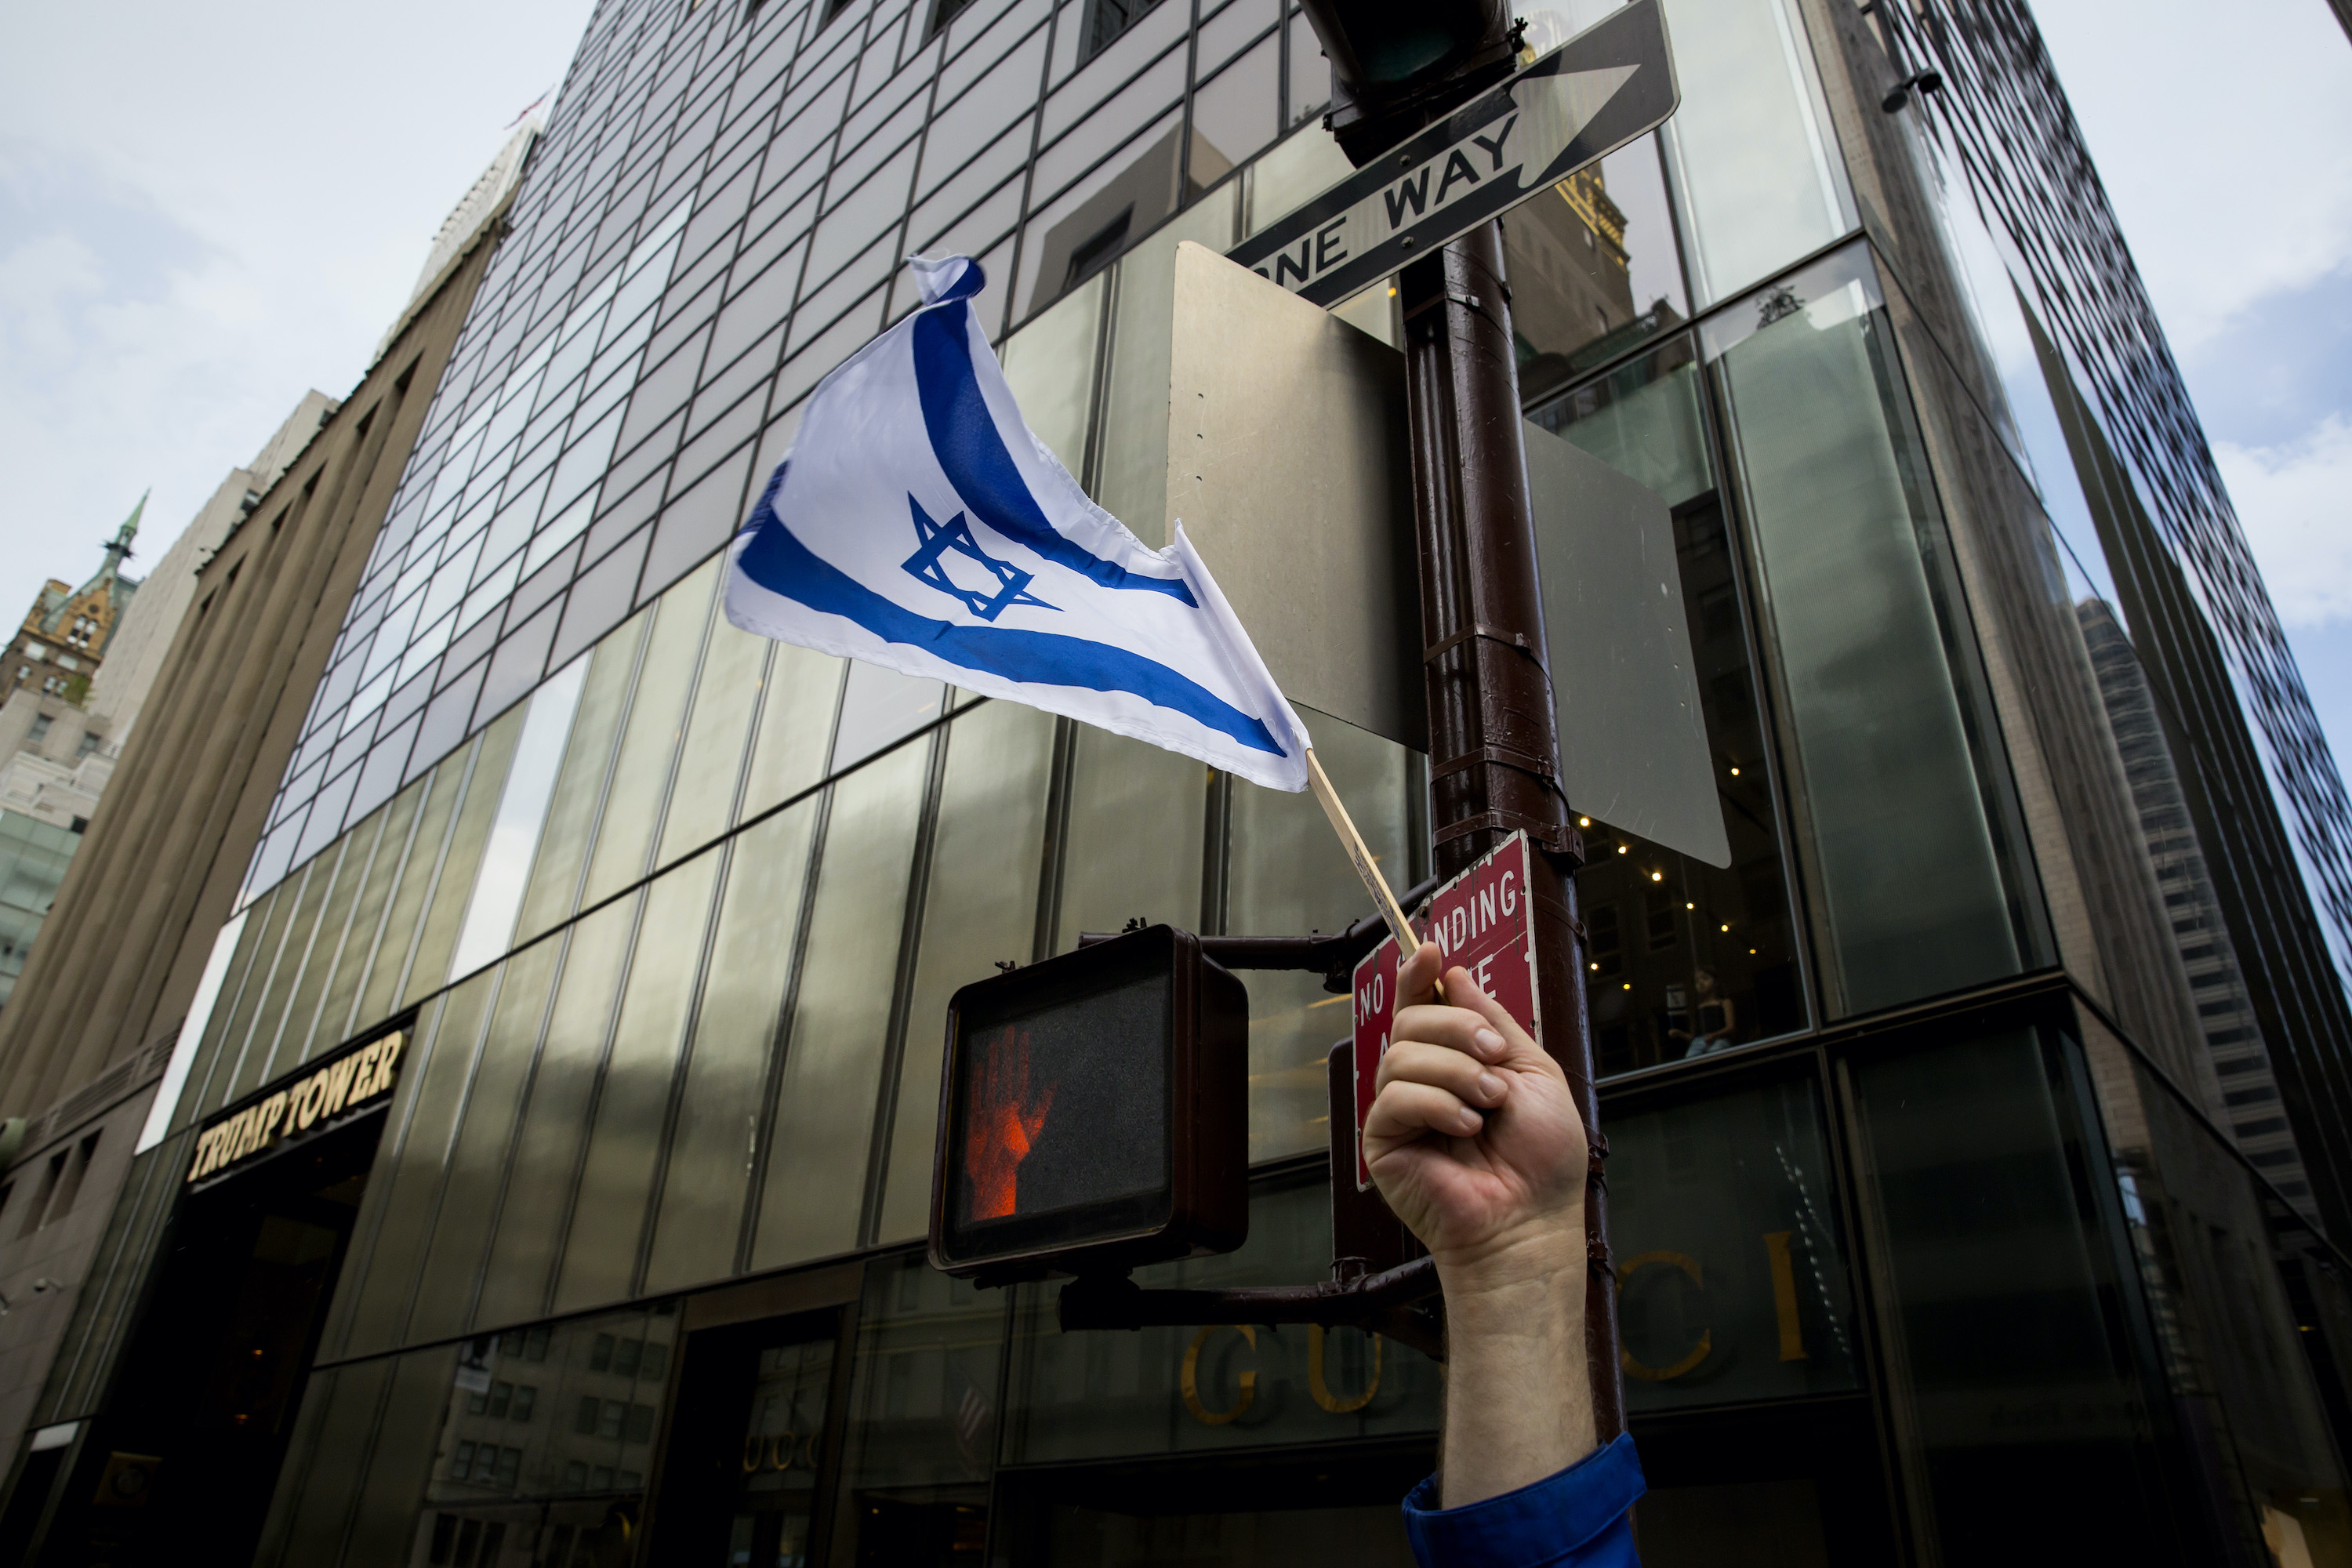 There is no Jewish vote—there are two, diametrically opposed | Opinion